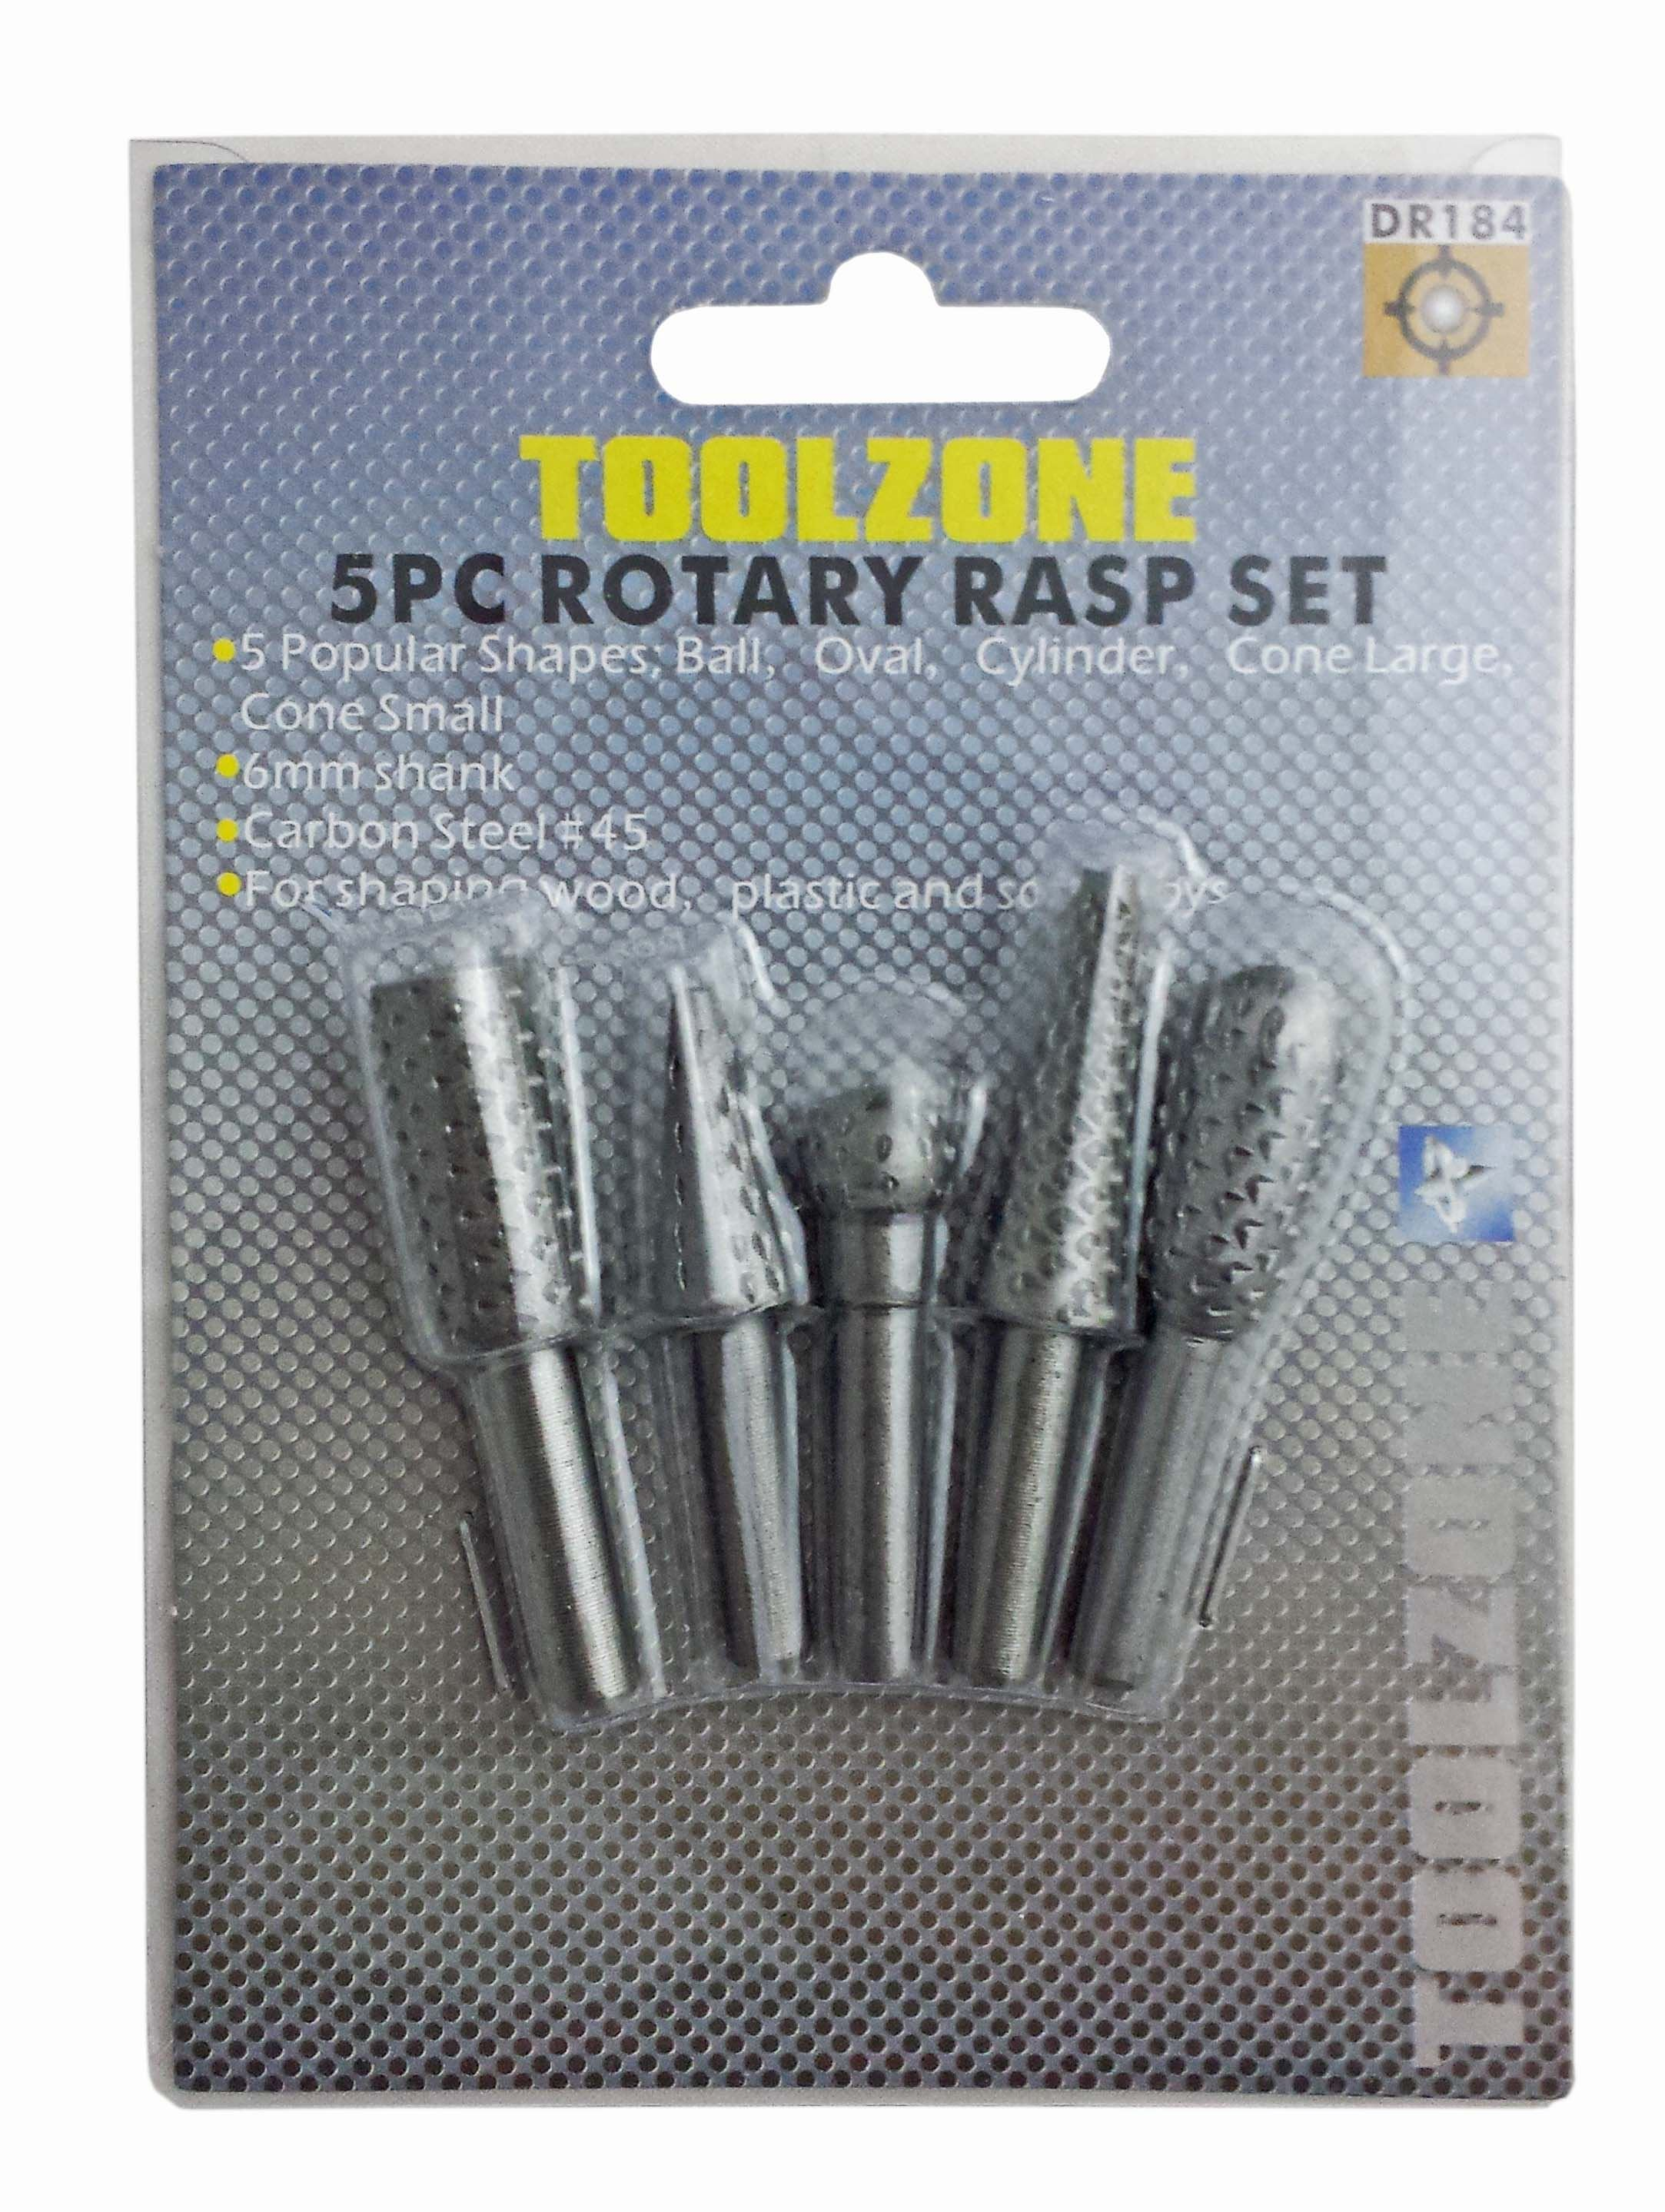 Toolzone 5Pc Rotary Rasp Set